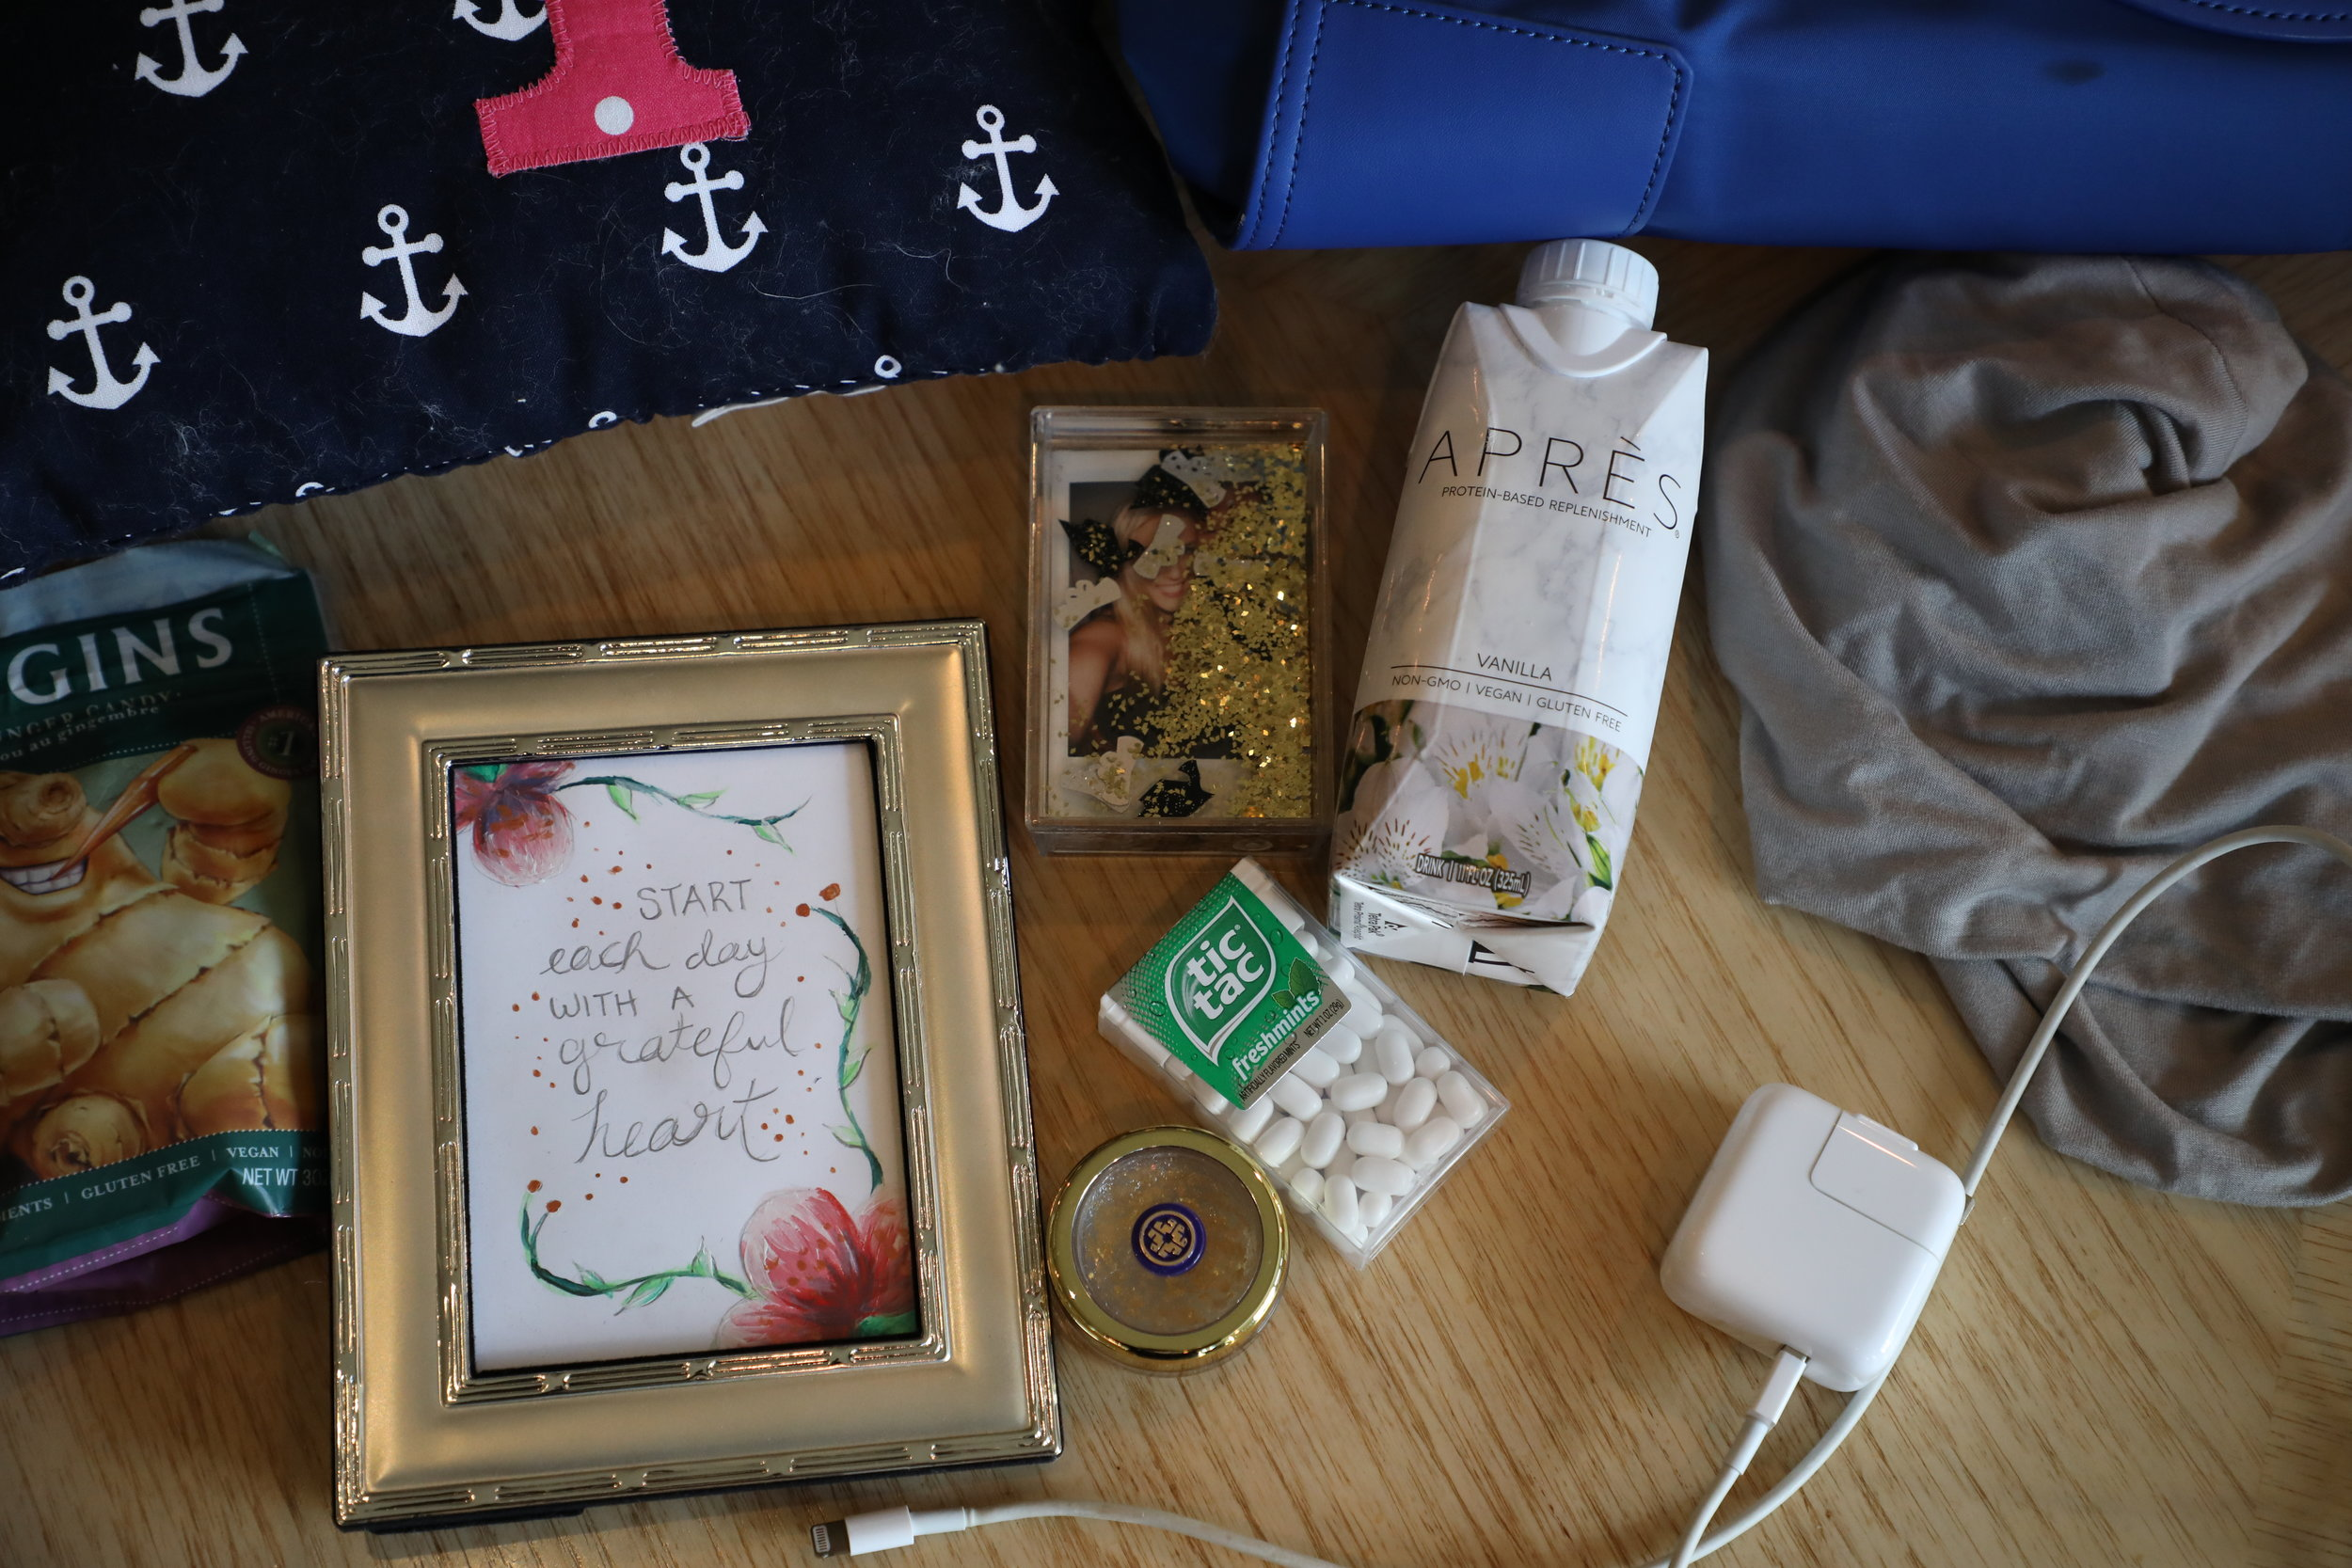 The items in Nicole Cummings' chemo bag were displayed on the table on March 16, 2019 at her home in Kansas City, Missouri. Cummings always brings several things and decorates her hospital room when having her chemotherapy.She said making this process an uplifting experience helps her to stay a positive mindset throughout.